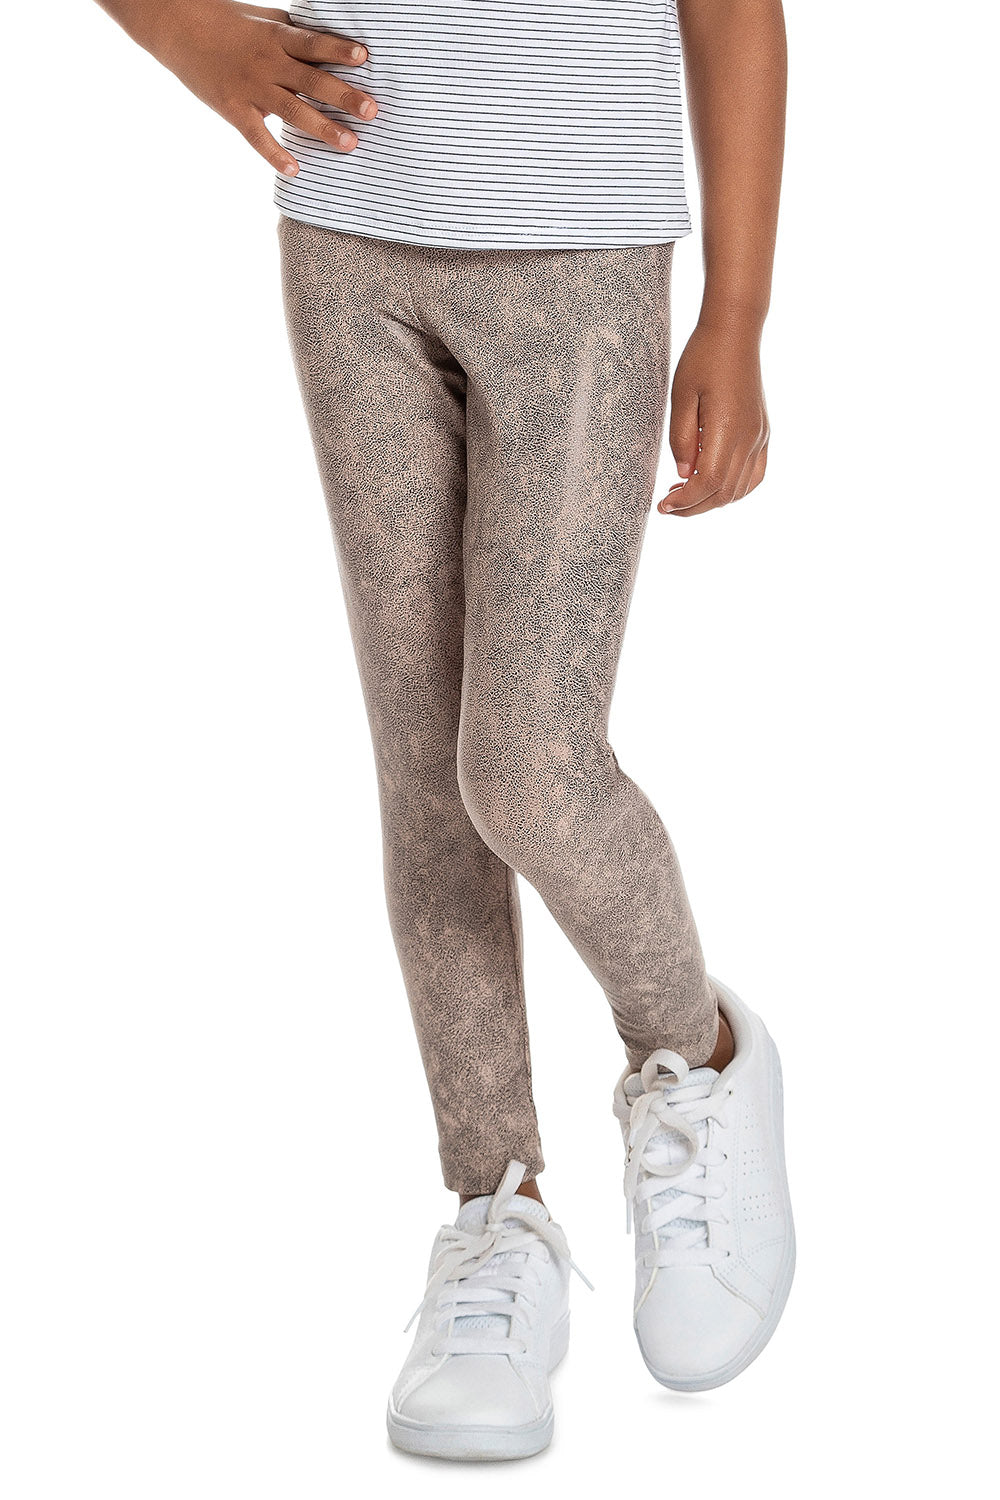 Up Style Kids Legging 1